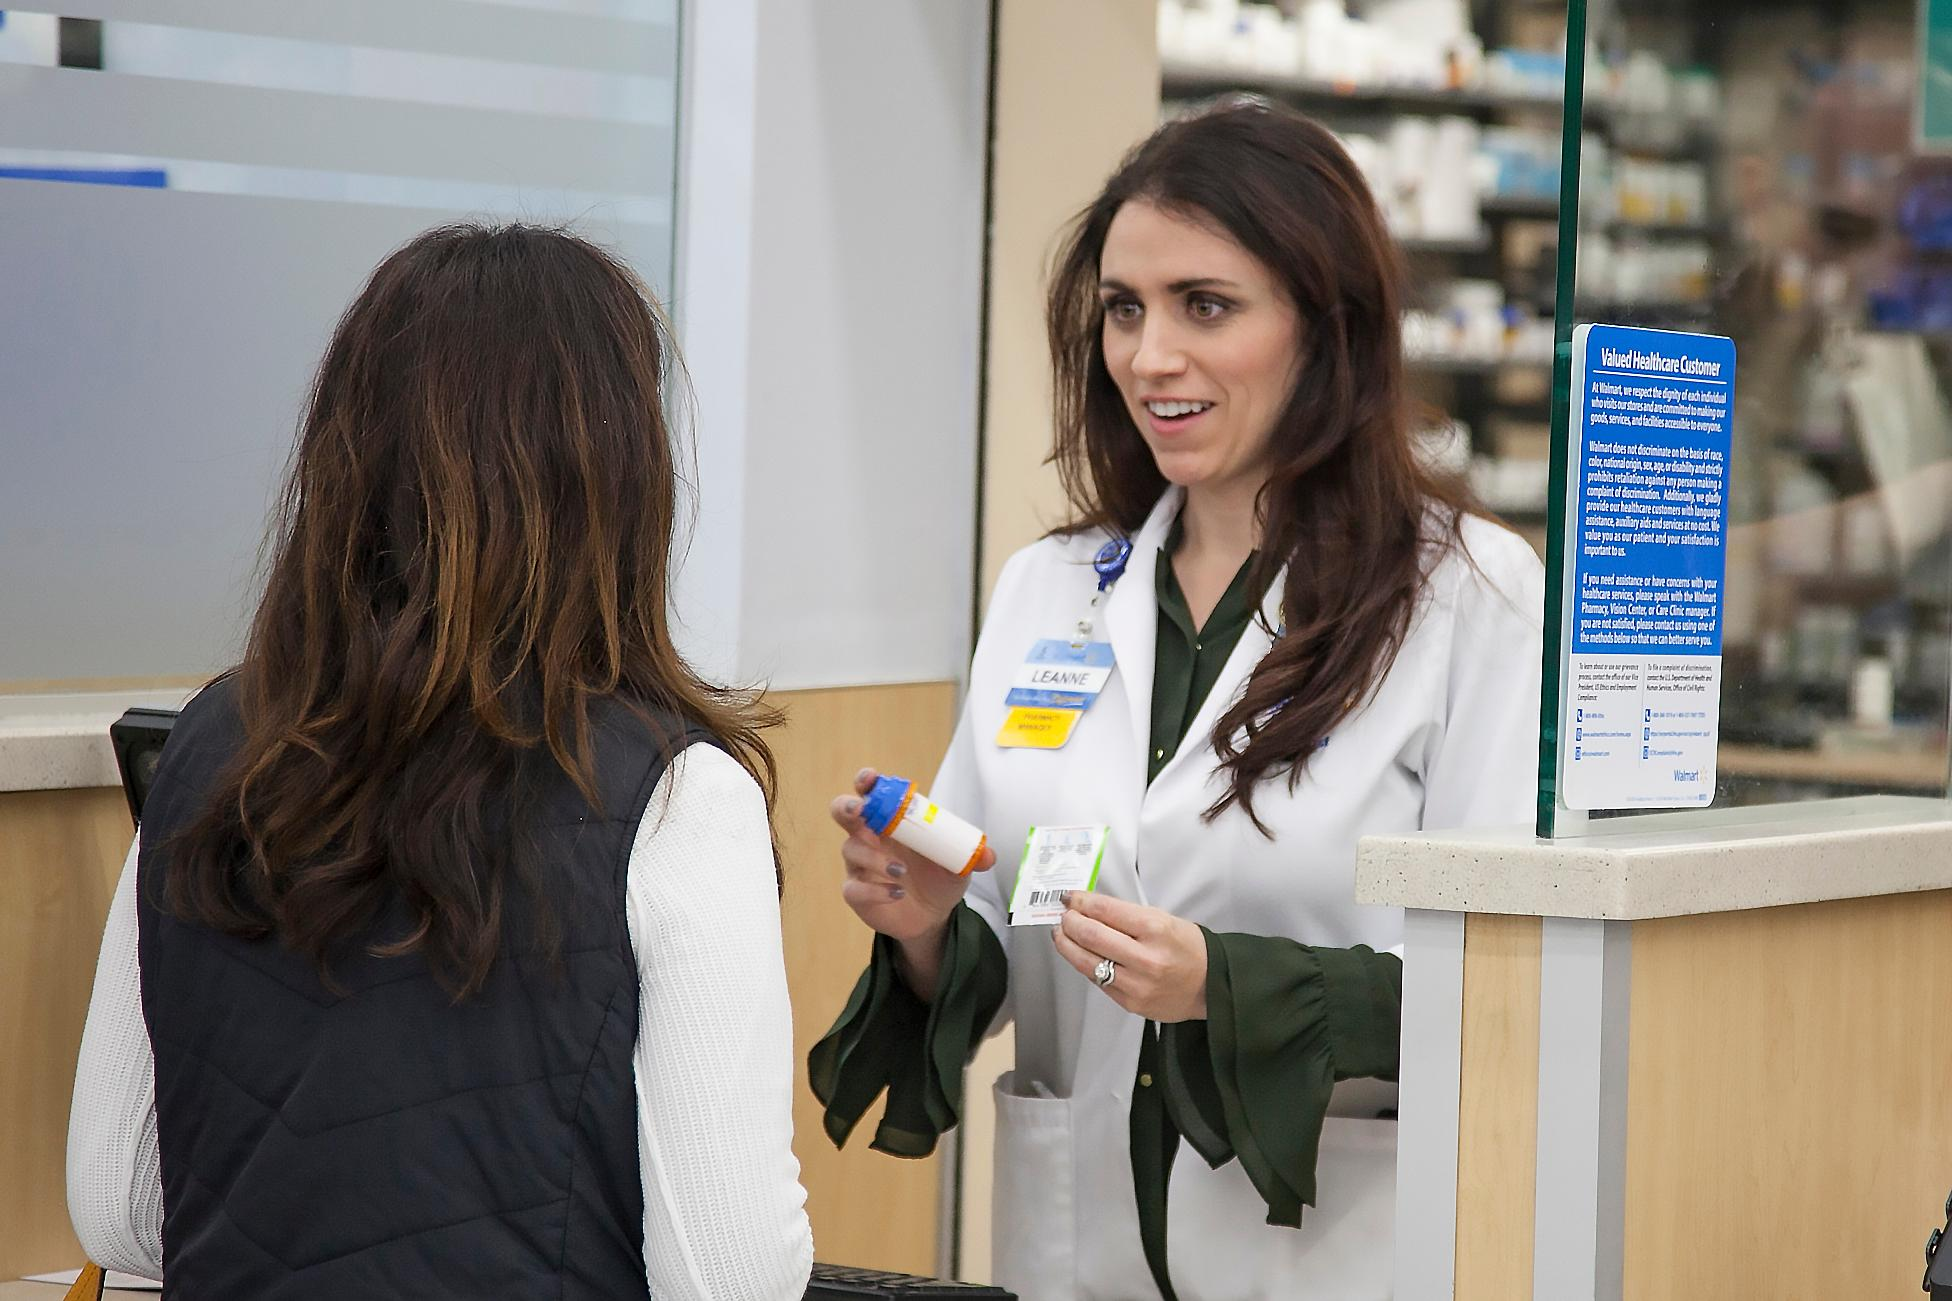 Walmart is helping customers get rid of leftover opioids by giving them packets that turn the addictive painkillers into a useless gel. (Walmart)